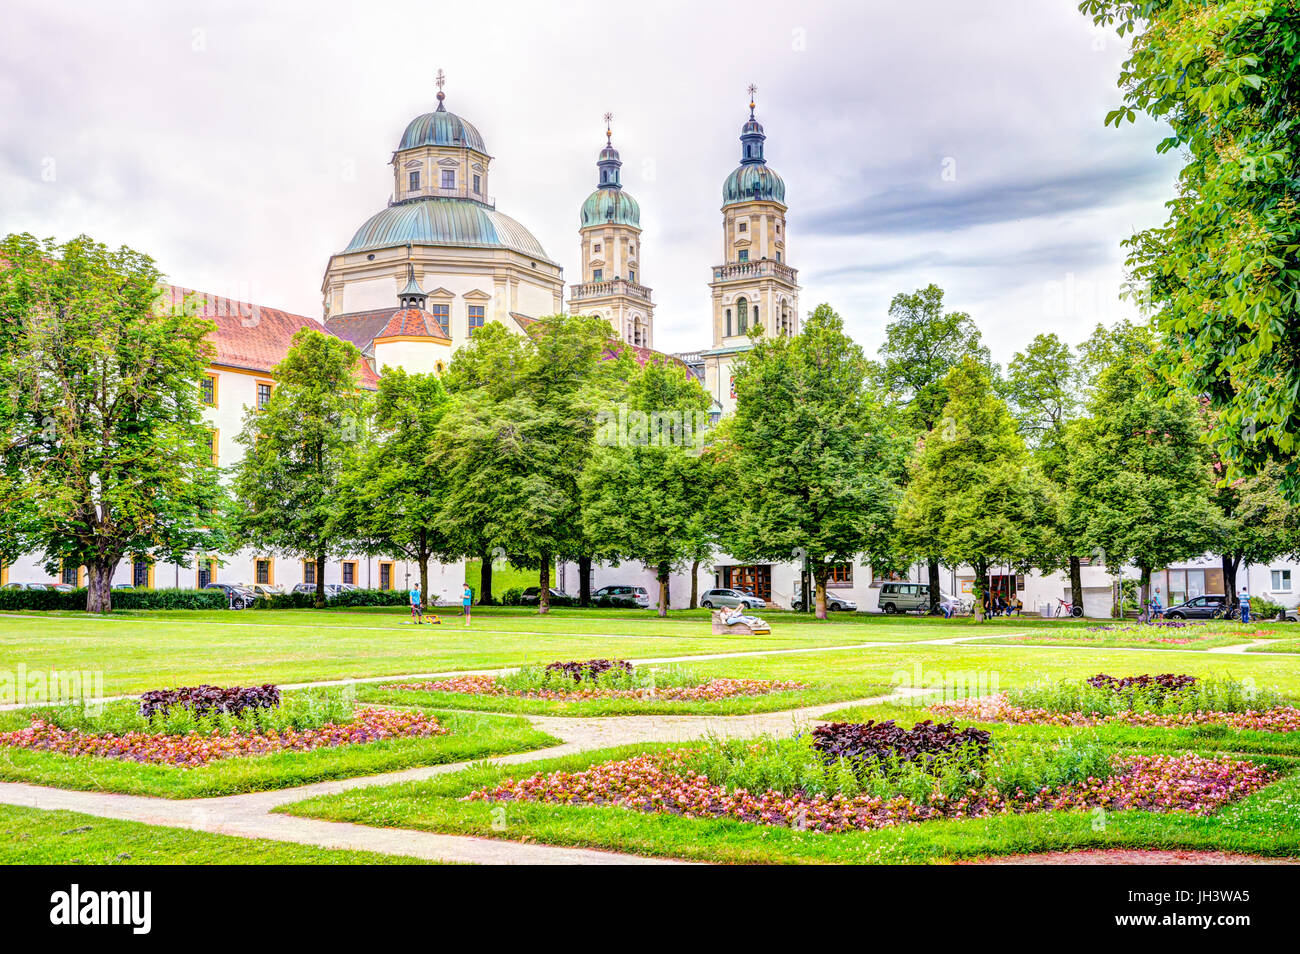 KEMPTEN, GERMANY - JUNE 9: People in park at the Basilica of Keptem, Germany on June 9, 2017. Kempten is one of - Stock Image